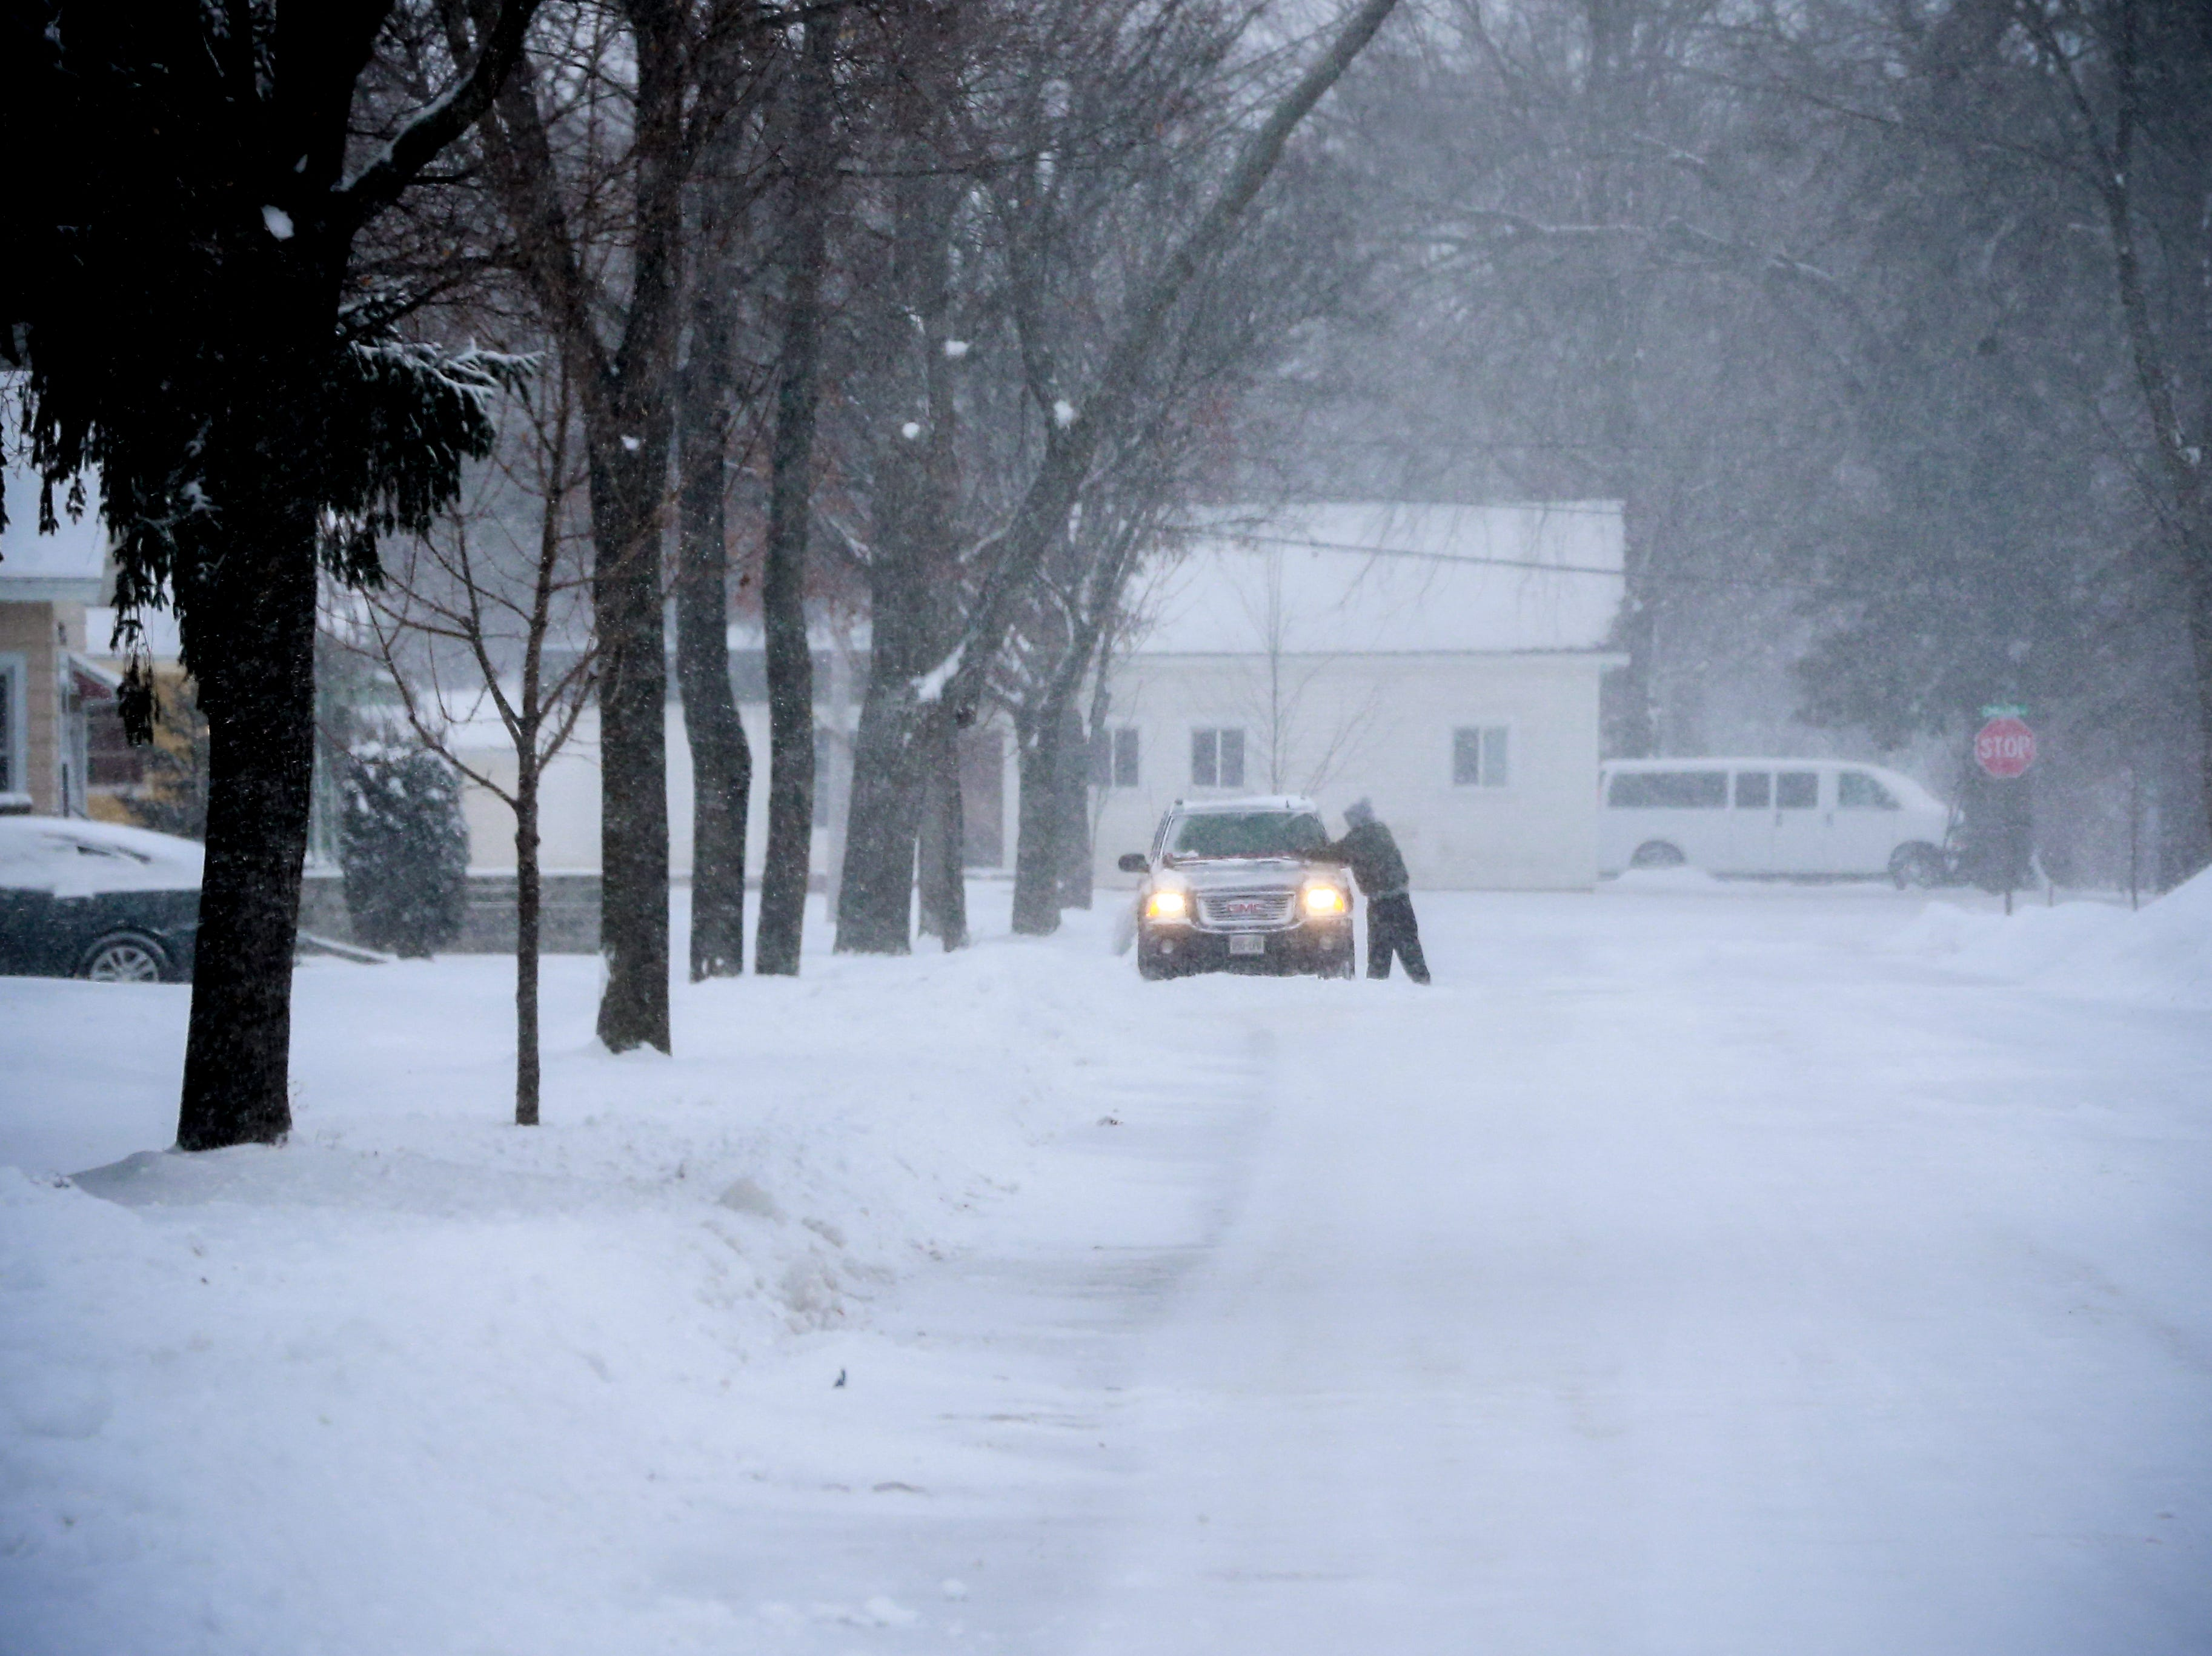 A person seen to clear off snow from his SUV vehicle after a snowstorm Monday, Jan. 28, 2019, in Wausau, Wis.